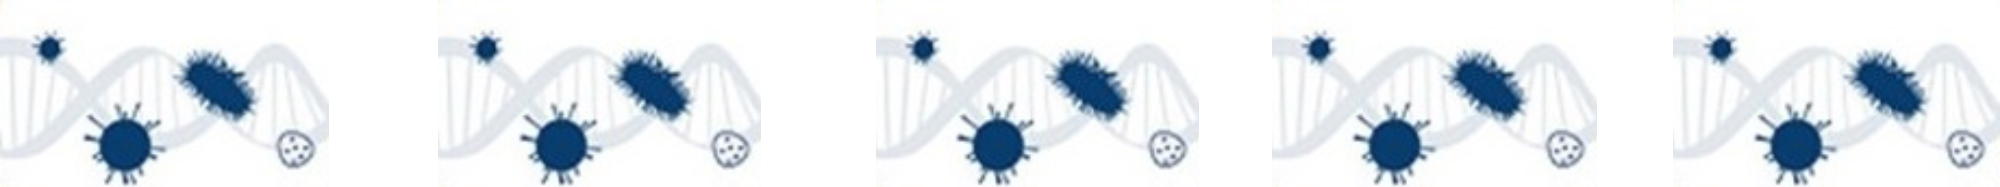 DNA and disease icons